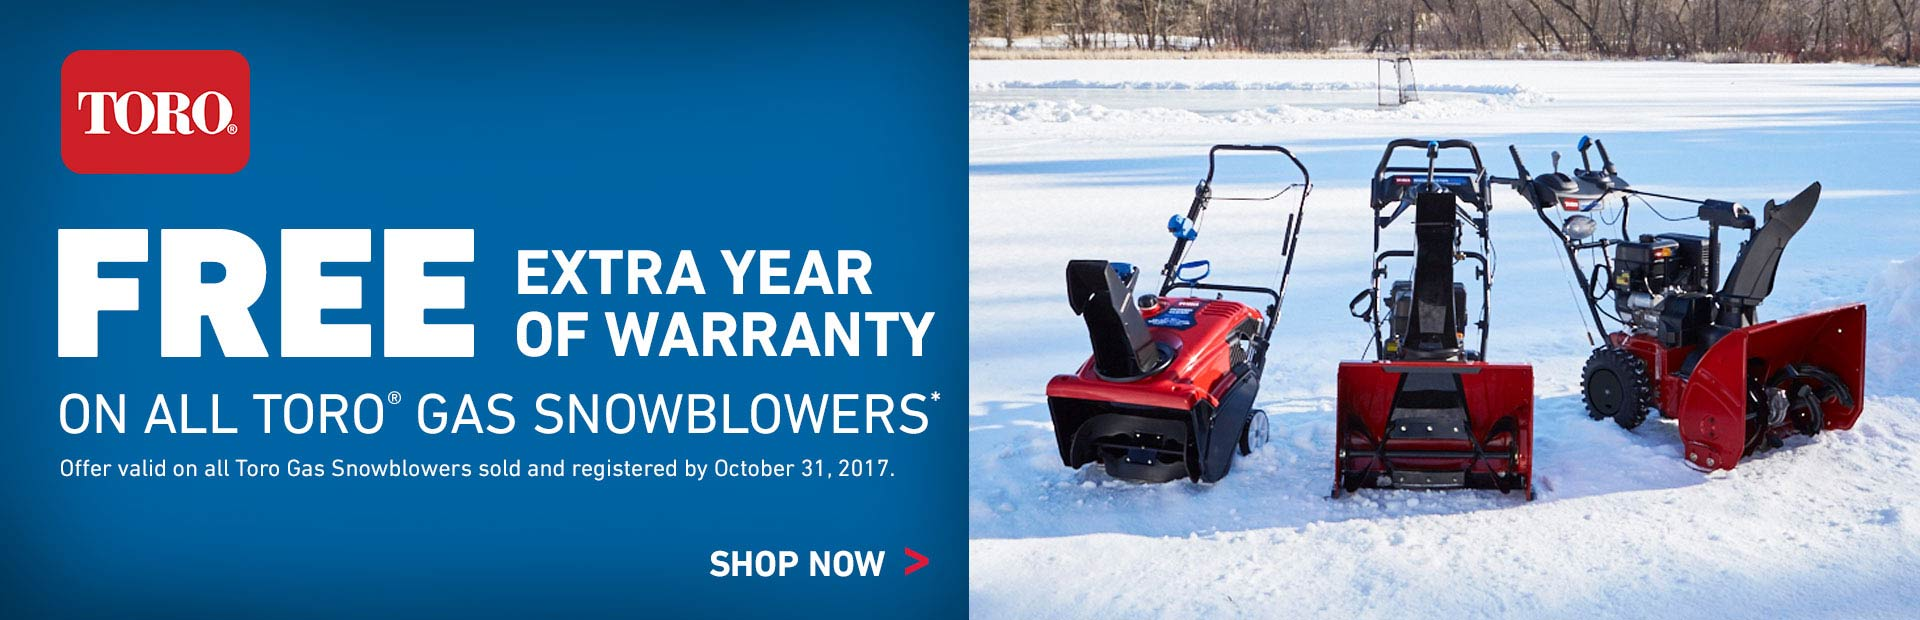 Toro: FREE Extra Year of Warranty